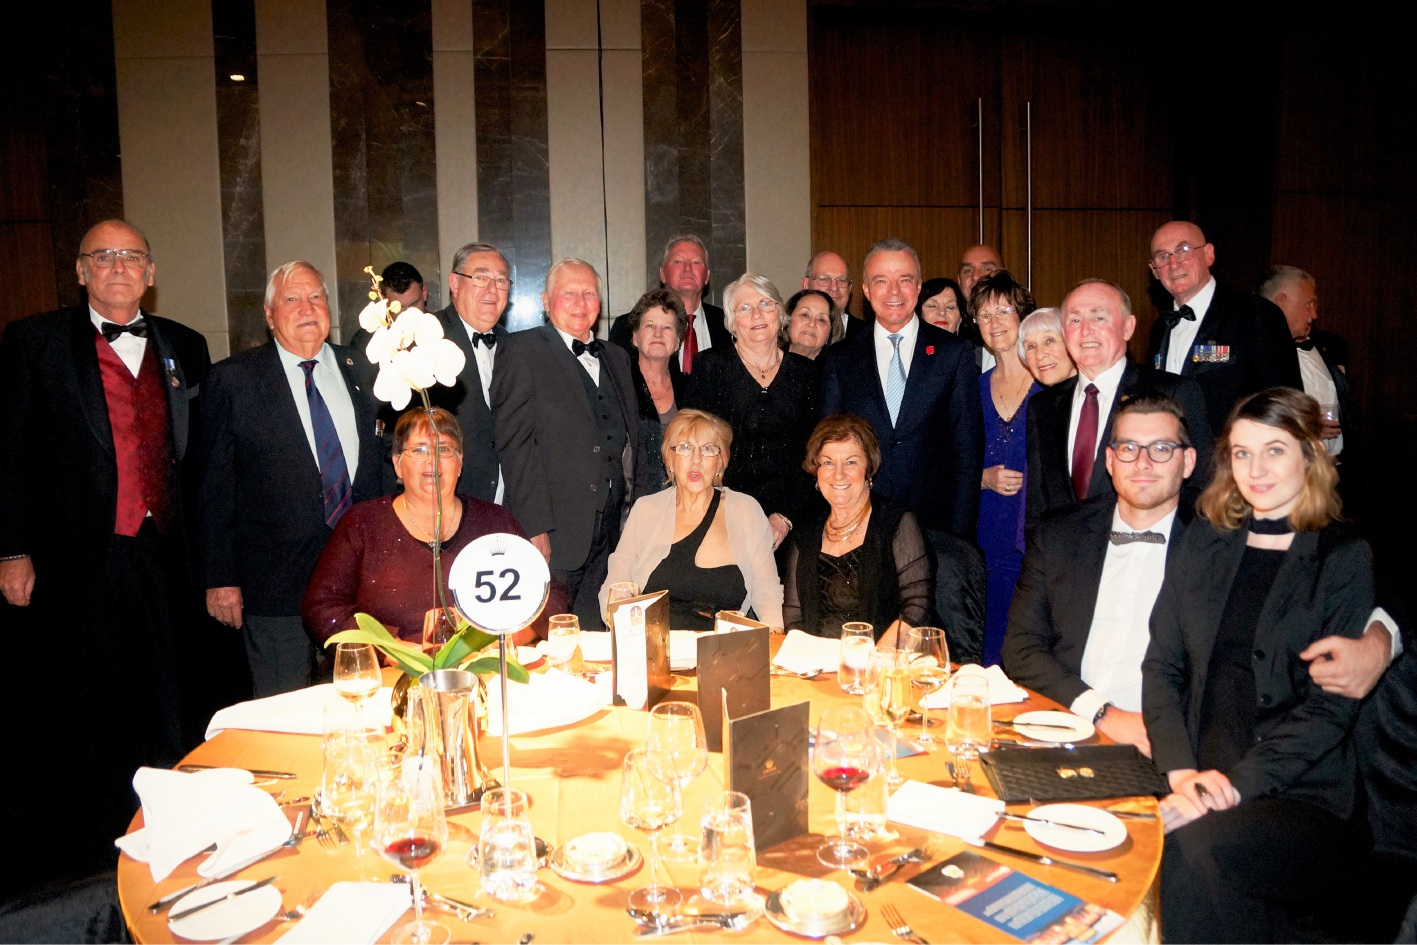 Belmont RSL members and Belmont City councillors at the 100th anniversary gala dinner  with Australian War Memorial director Brendan Nelson, who was the guest speaker.